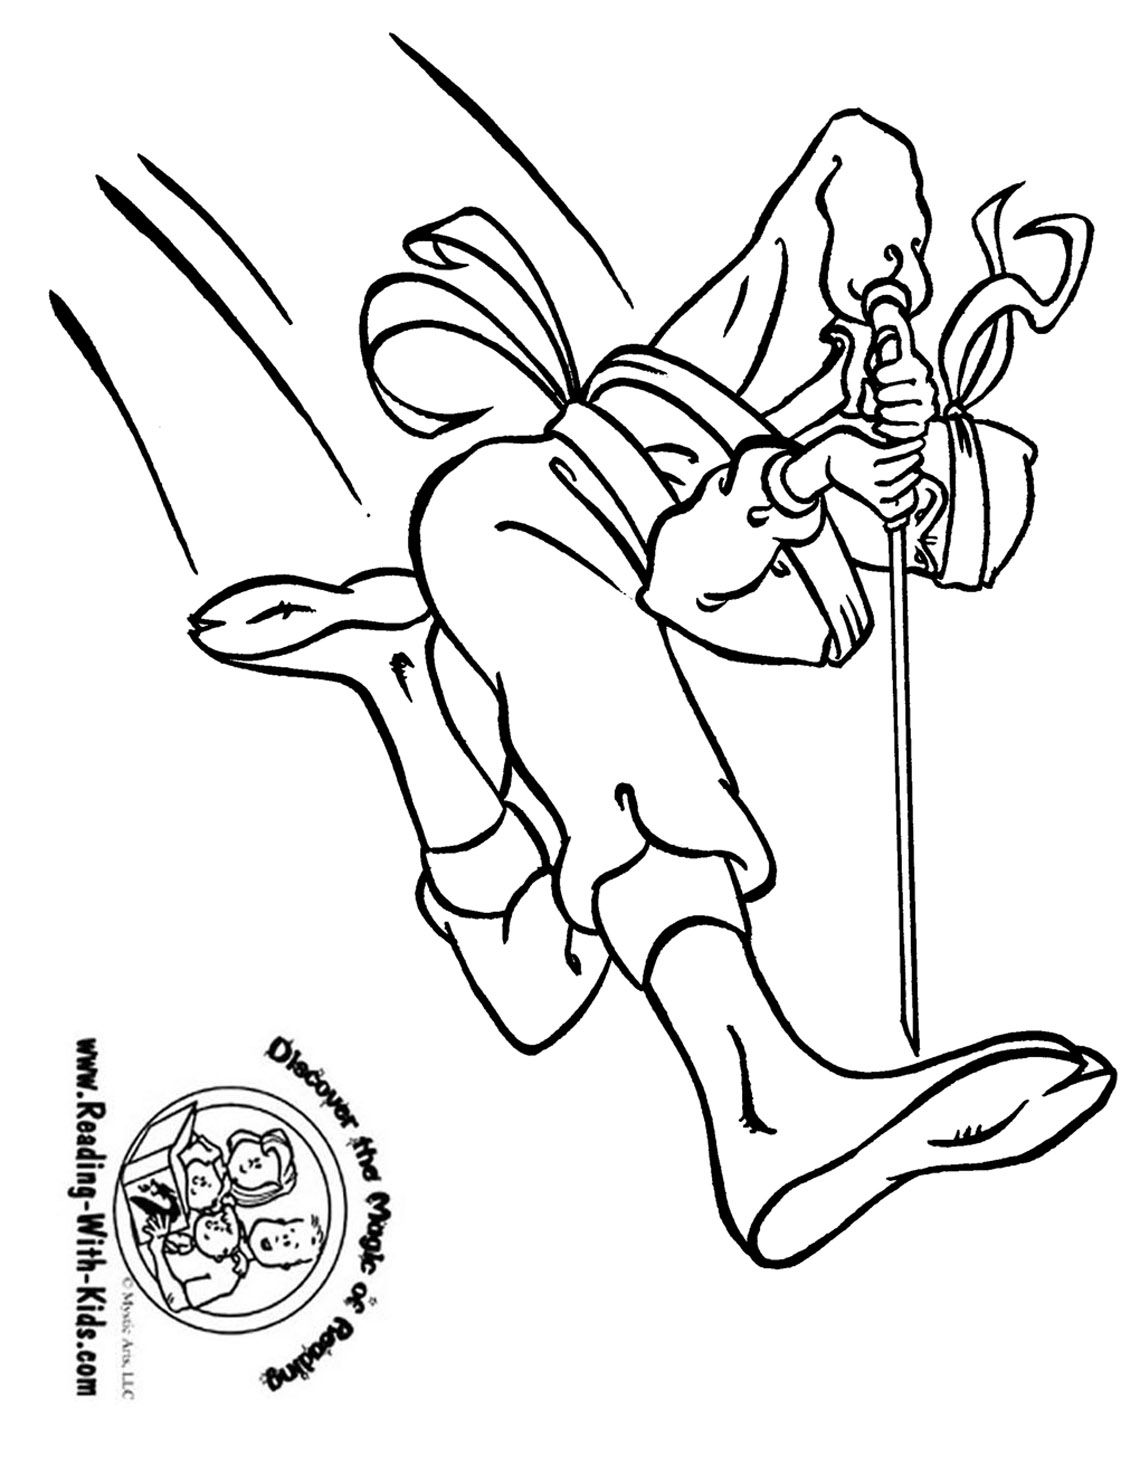 Ninja Coloring Page Fantasy Coloring Pages Pinterest